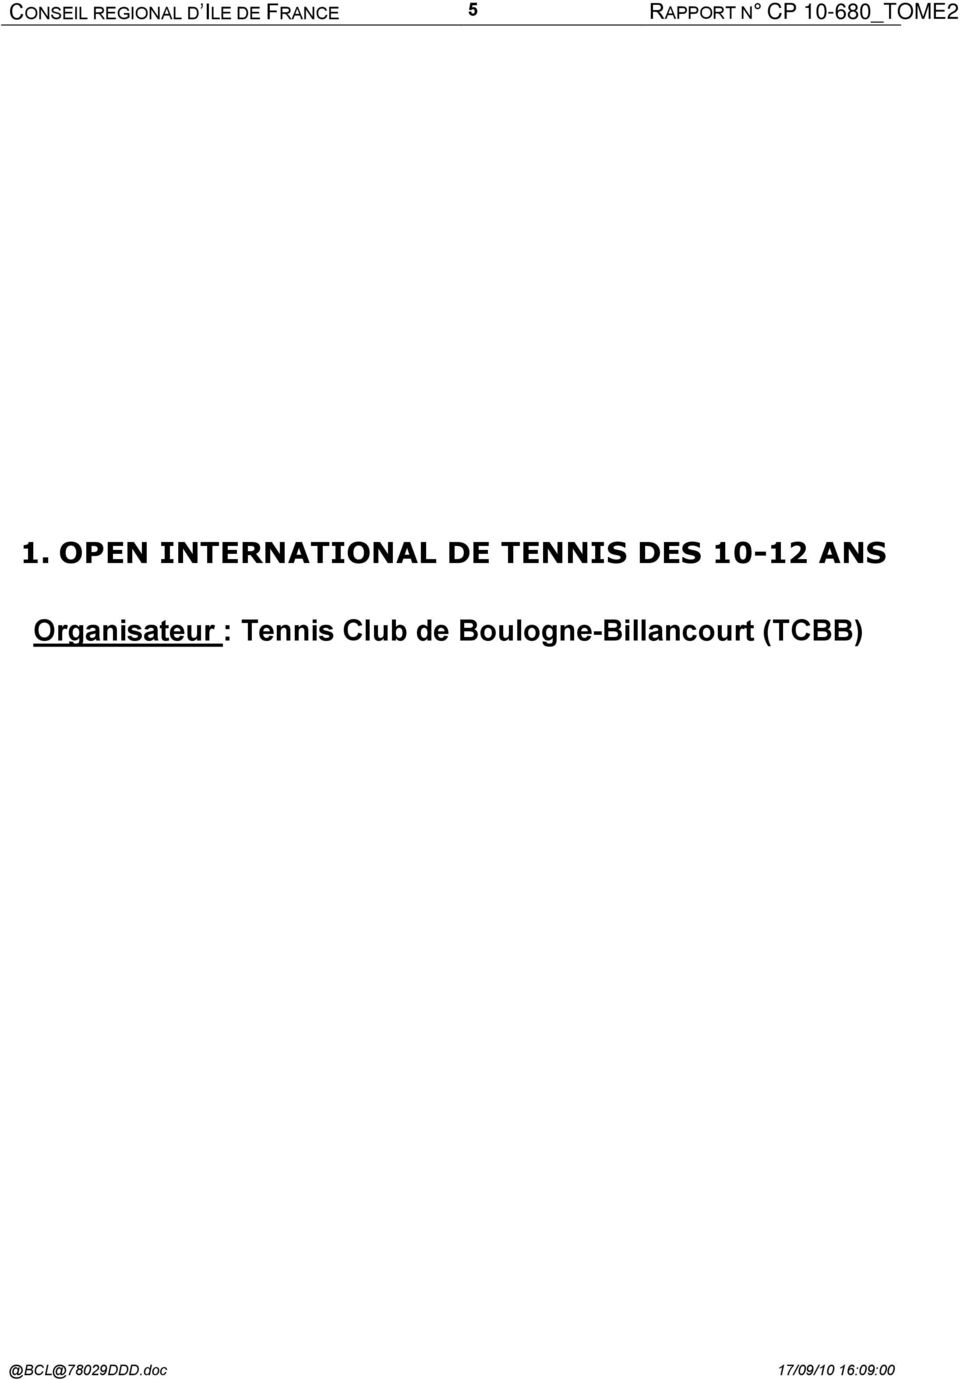 OPEN INTERNATIONAL DE TENNIS DES 10-12 ANS